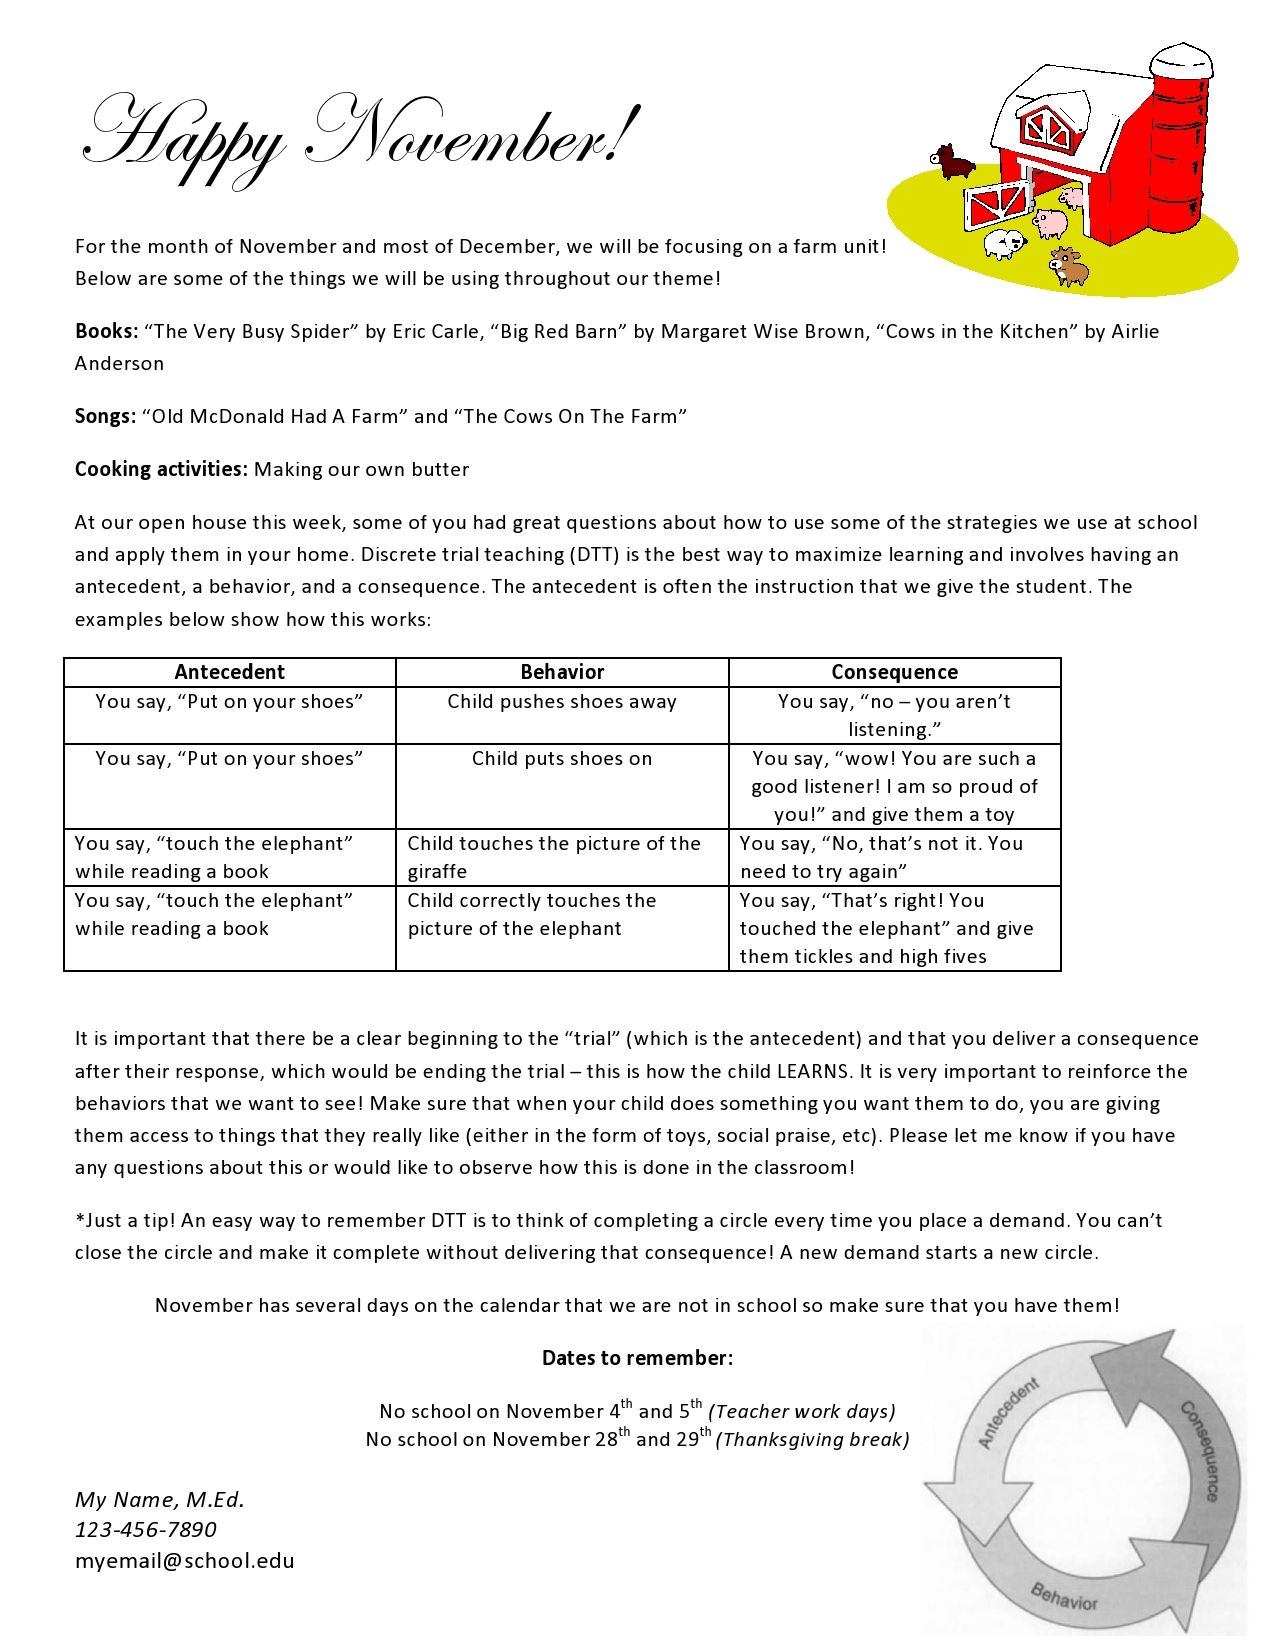 teach early autism free download for parent newsletter includes